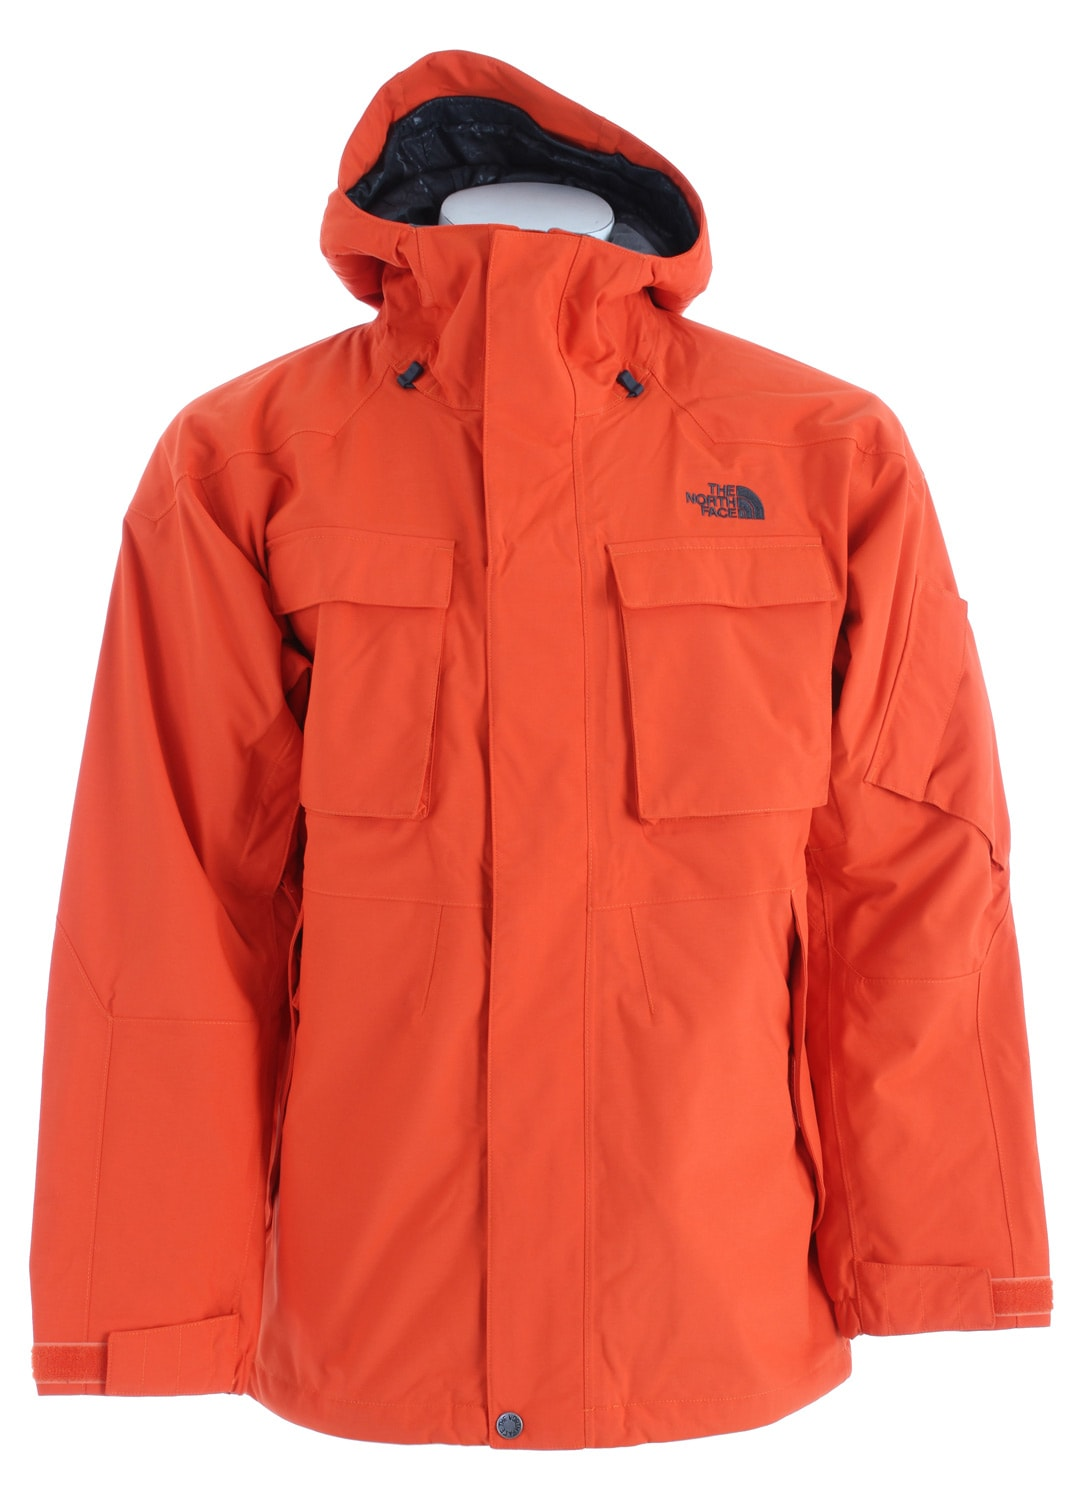 Shop for The North Face Decagon Ski Jacket Flare Orange - Men's